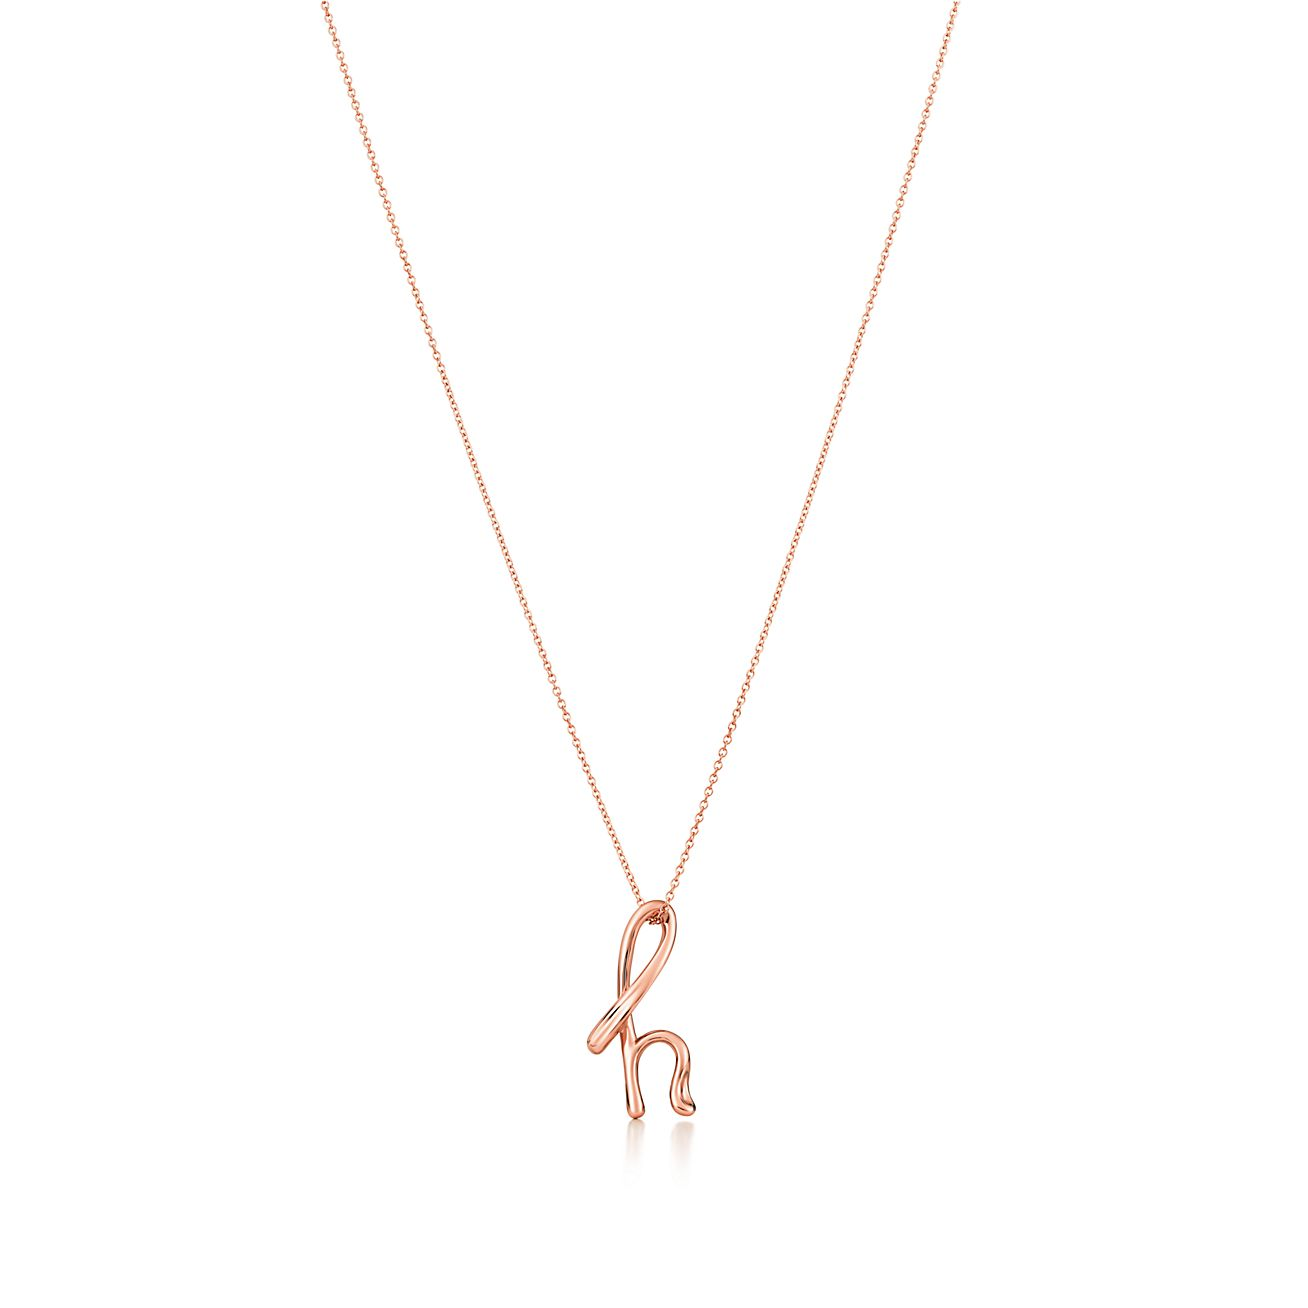 Elsa Peretti Alphabet pendant in 18k rose gold Letters A-Z available - Size B Tiffany & Co. ieip86JBf